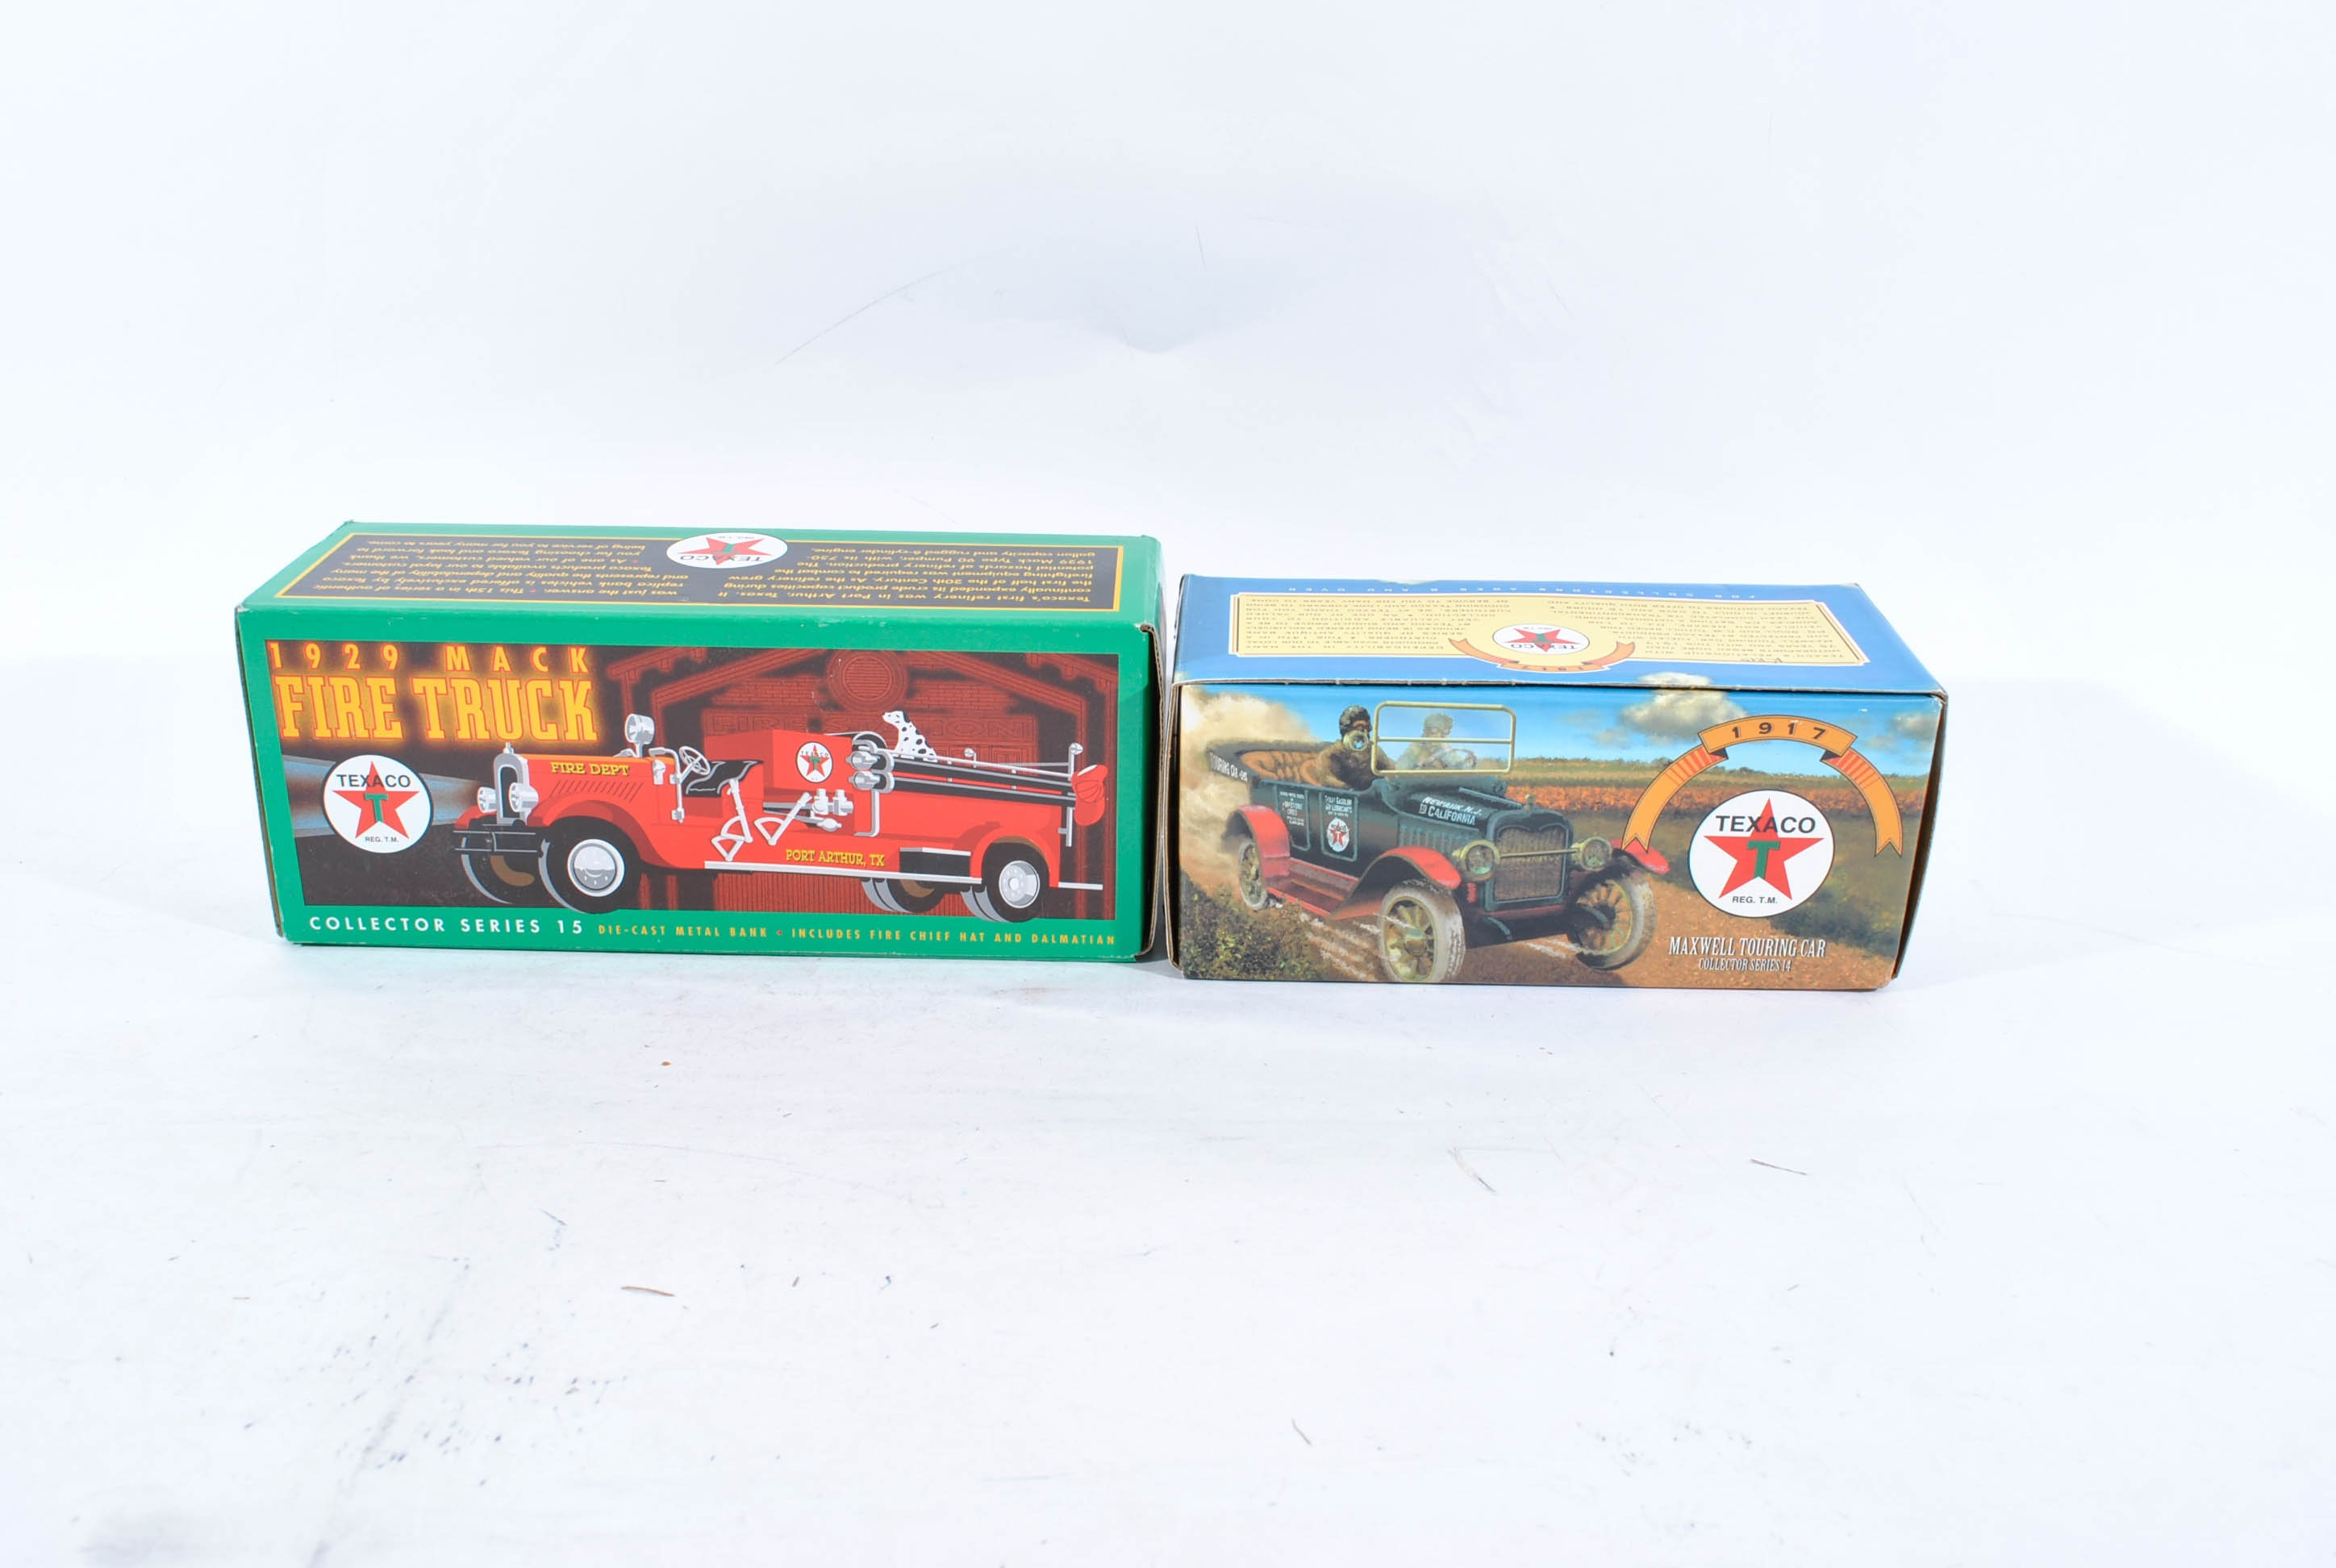 Ertl Texaco Die-Cast Car and Coin Bank